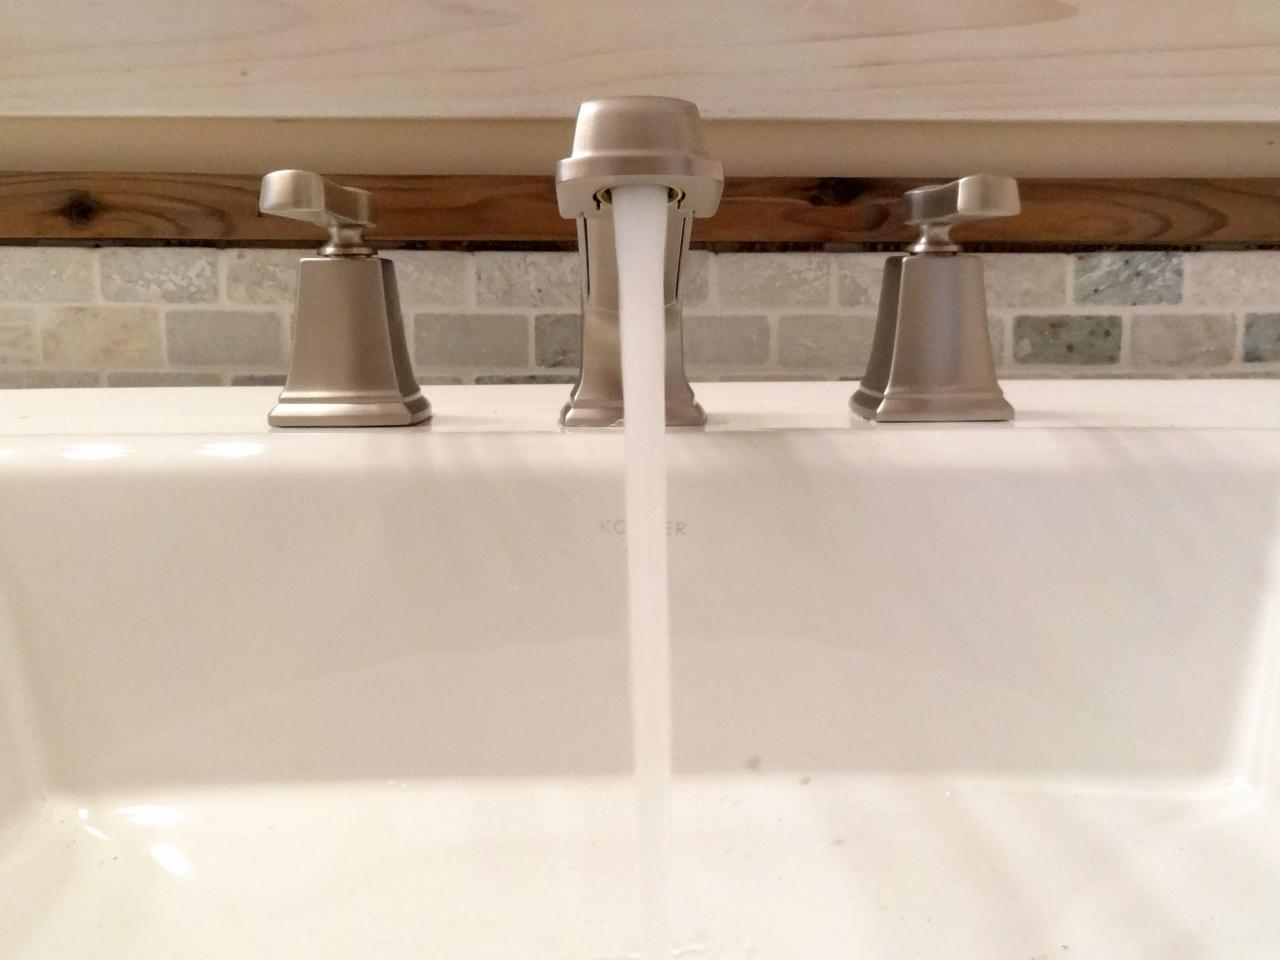 how to replace a bathroom faucet | how-tos | diy